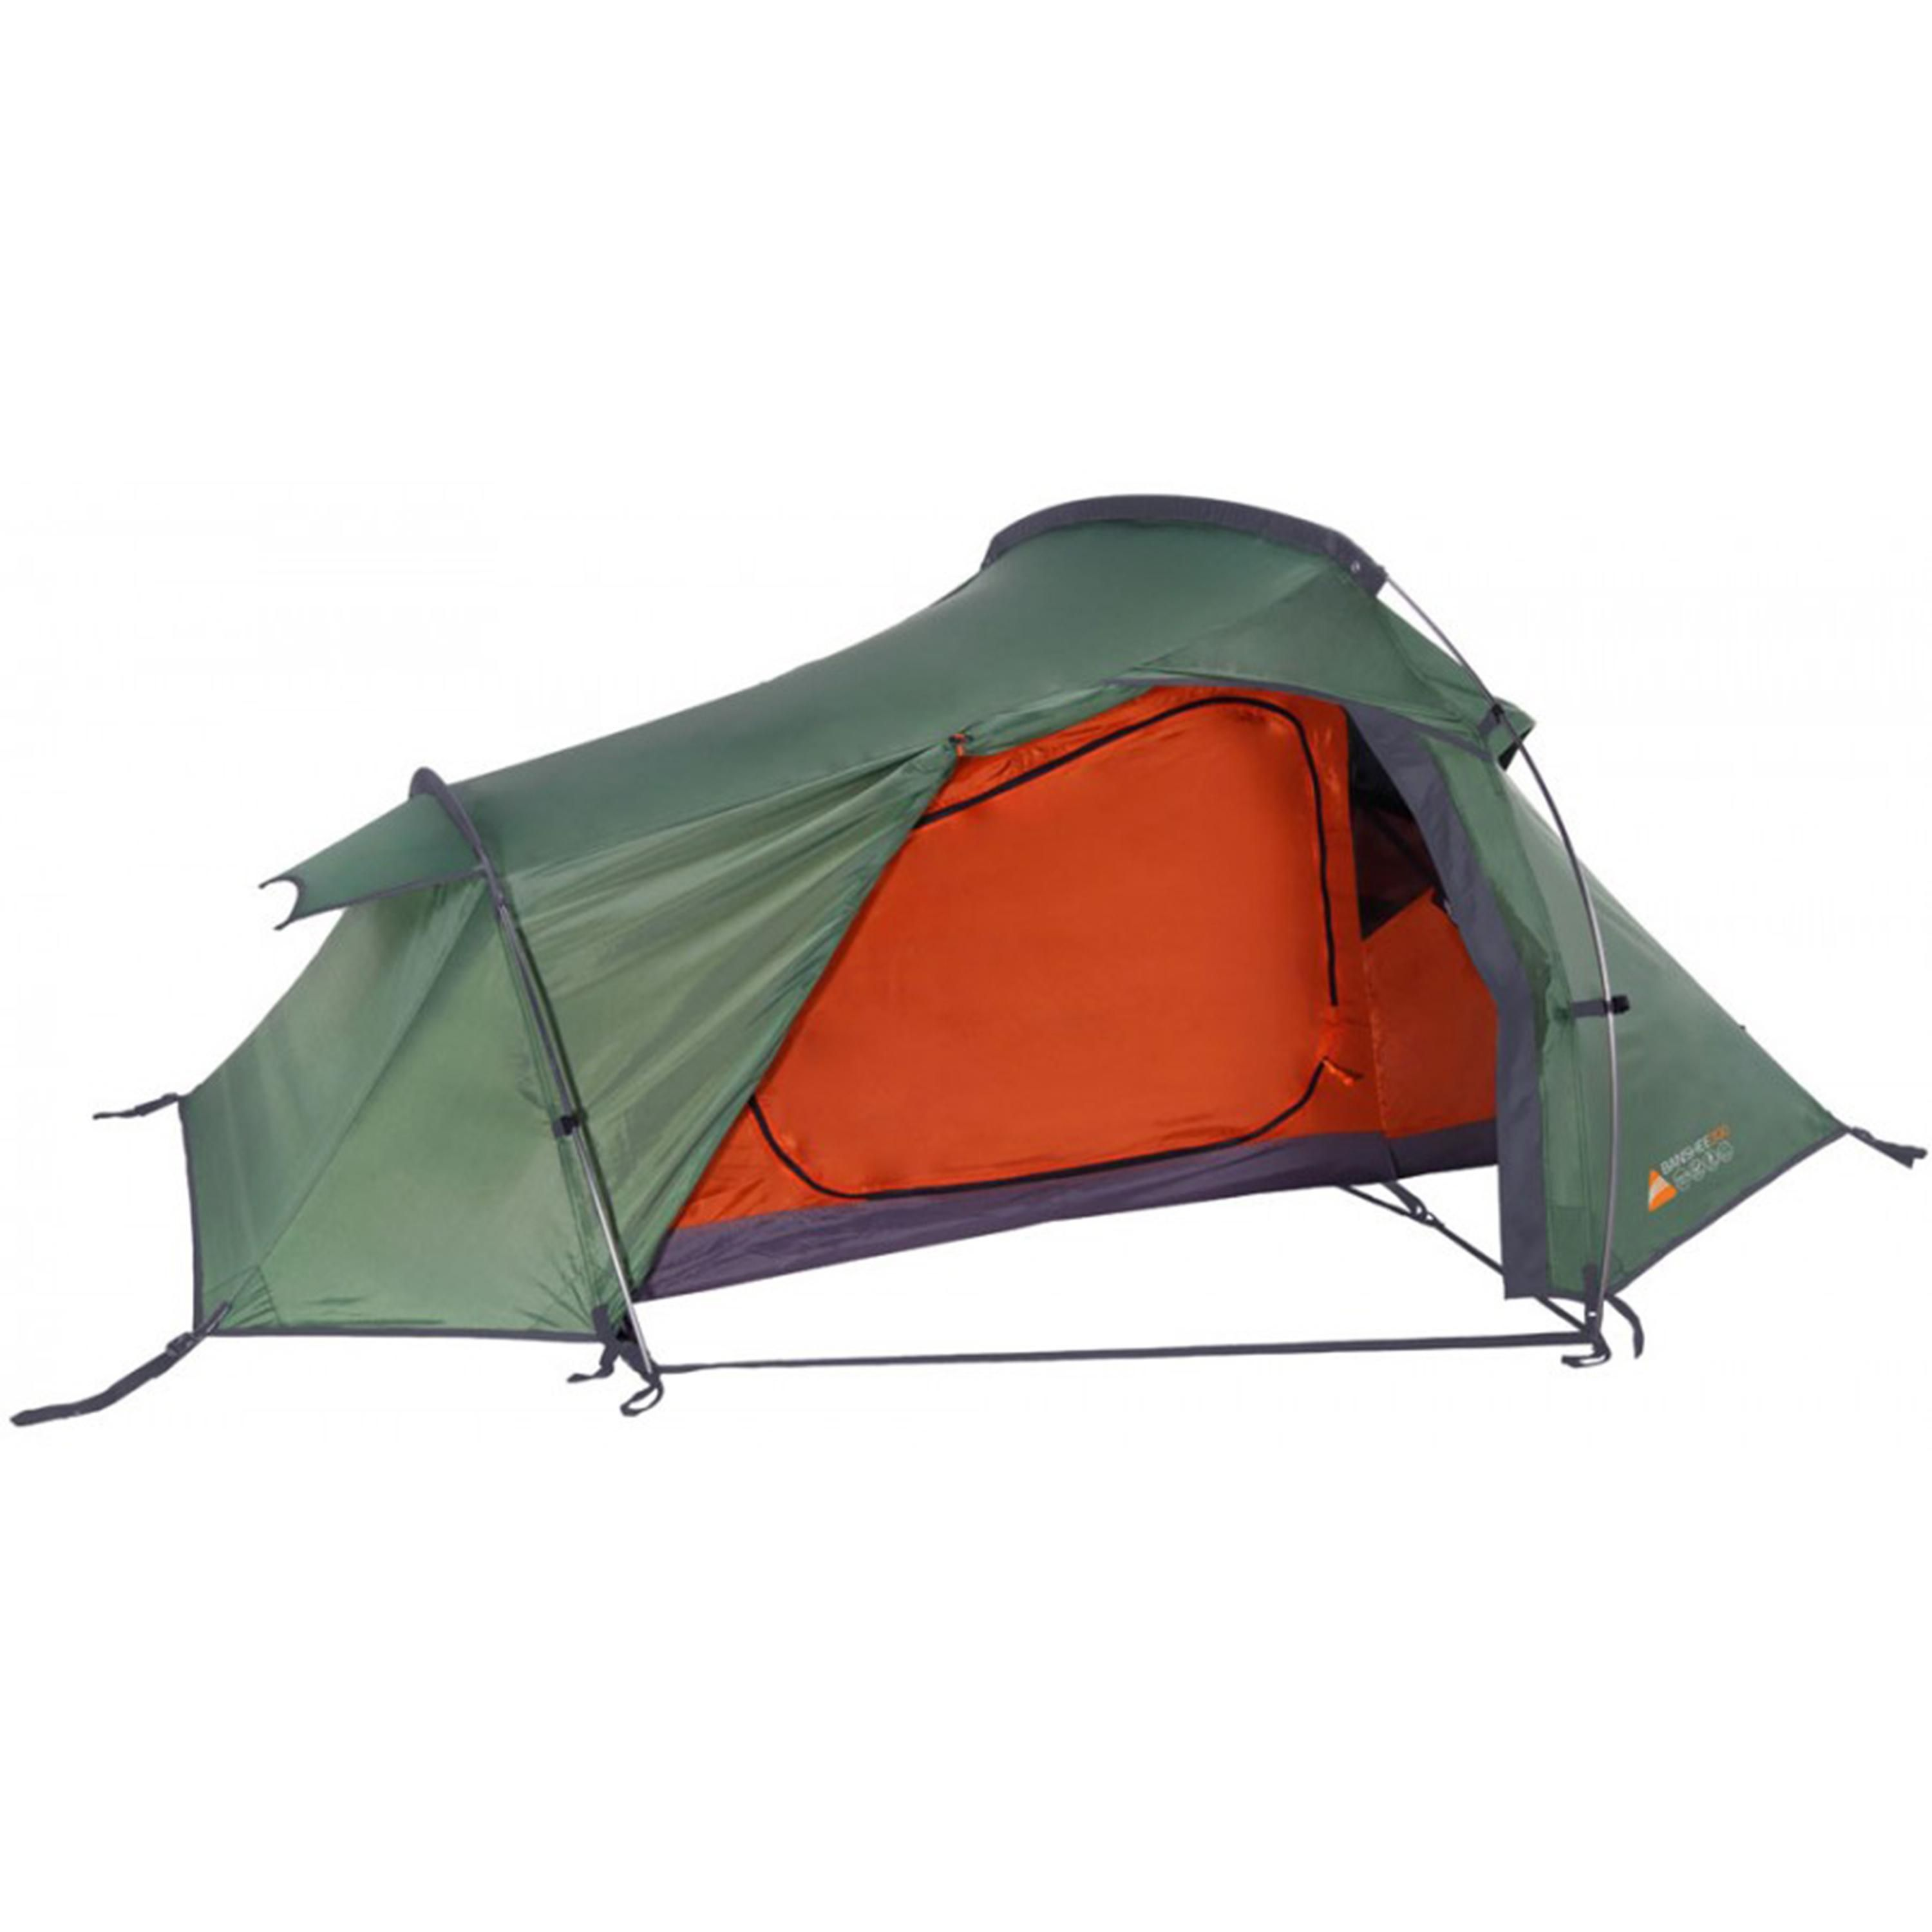 The Banshee 300 Tent from Vango features a compact and lightweight all-in-one pitching design which means erecting is simple and efficient.  sc 1 st  Pinterest & Banshee 300 Mid Tent | Tents - the best lightest compact best ...